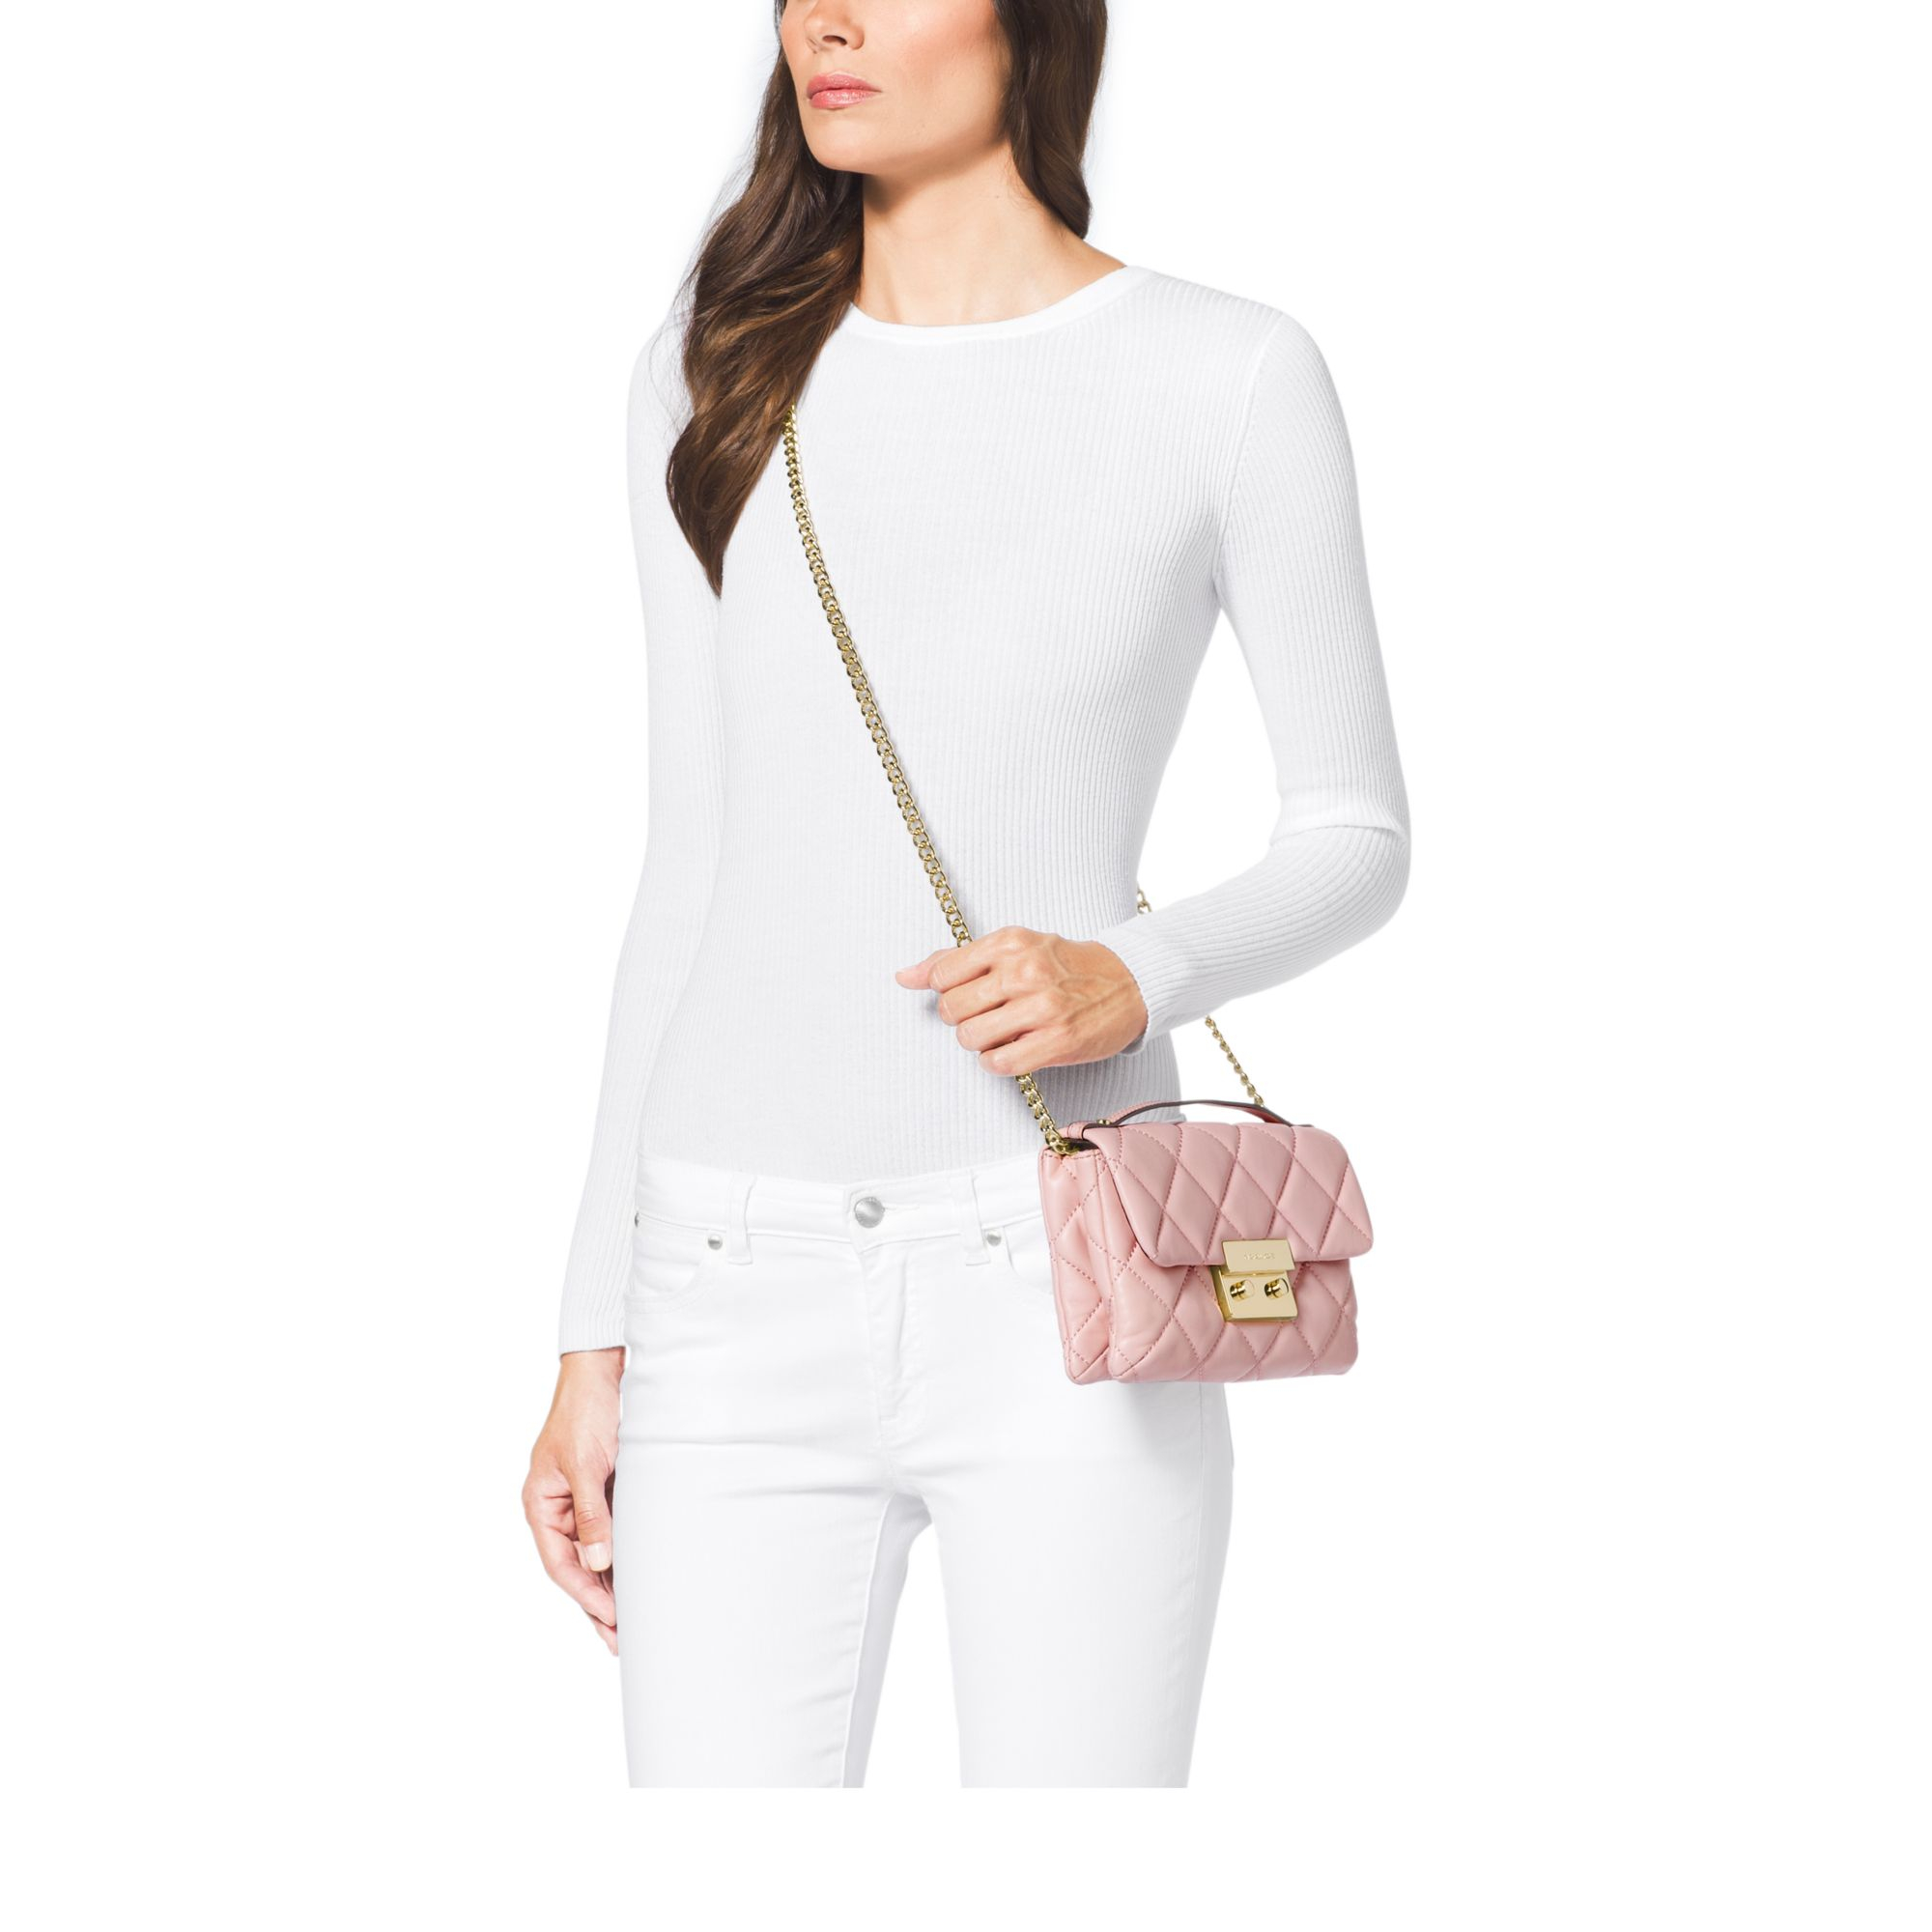 5c36161cabcd23 Michael Kors Sloan Small Quilted Cross-Body Bag in Pink - Lyst